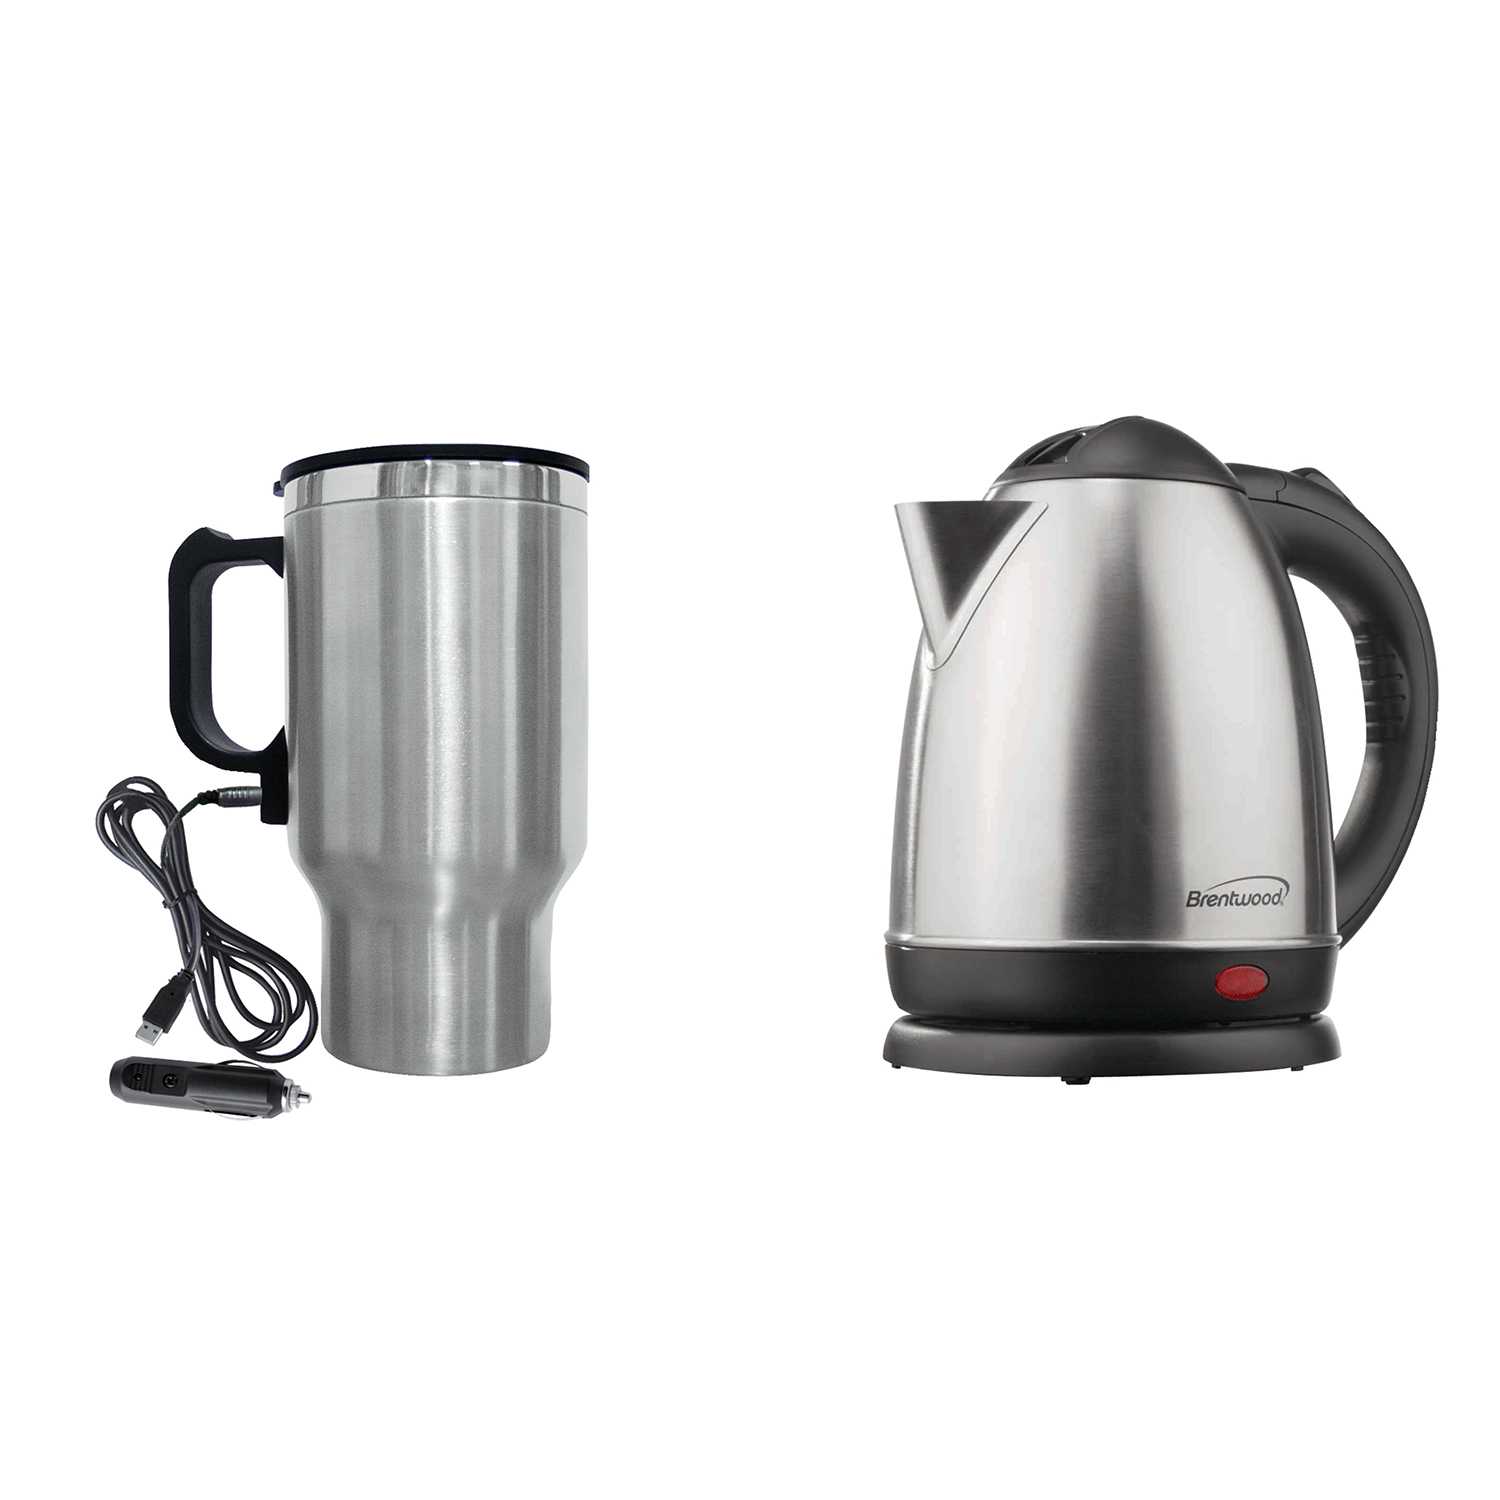 Brentwood Appliances KT-1780 1.5-Liter Stainless Steel Cordless Electric Kettle (Brushed Stainless Steel) and CMB-16C 16-Ounce Stainless Steel Heated Travel Mug with 12-Volt Car Adapter Bundle